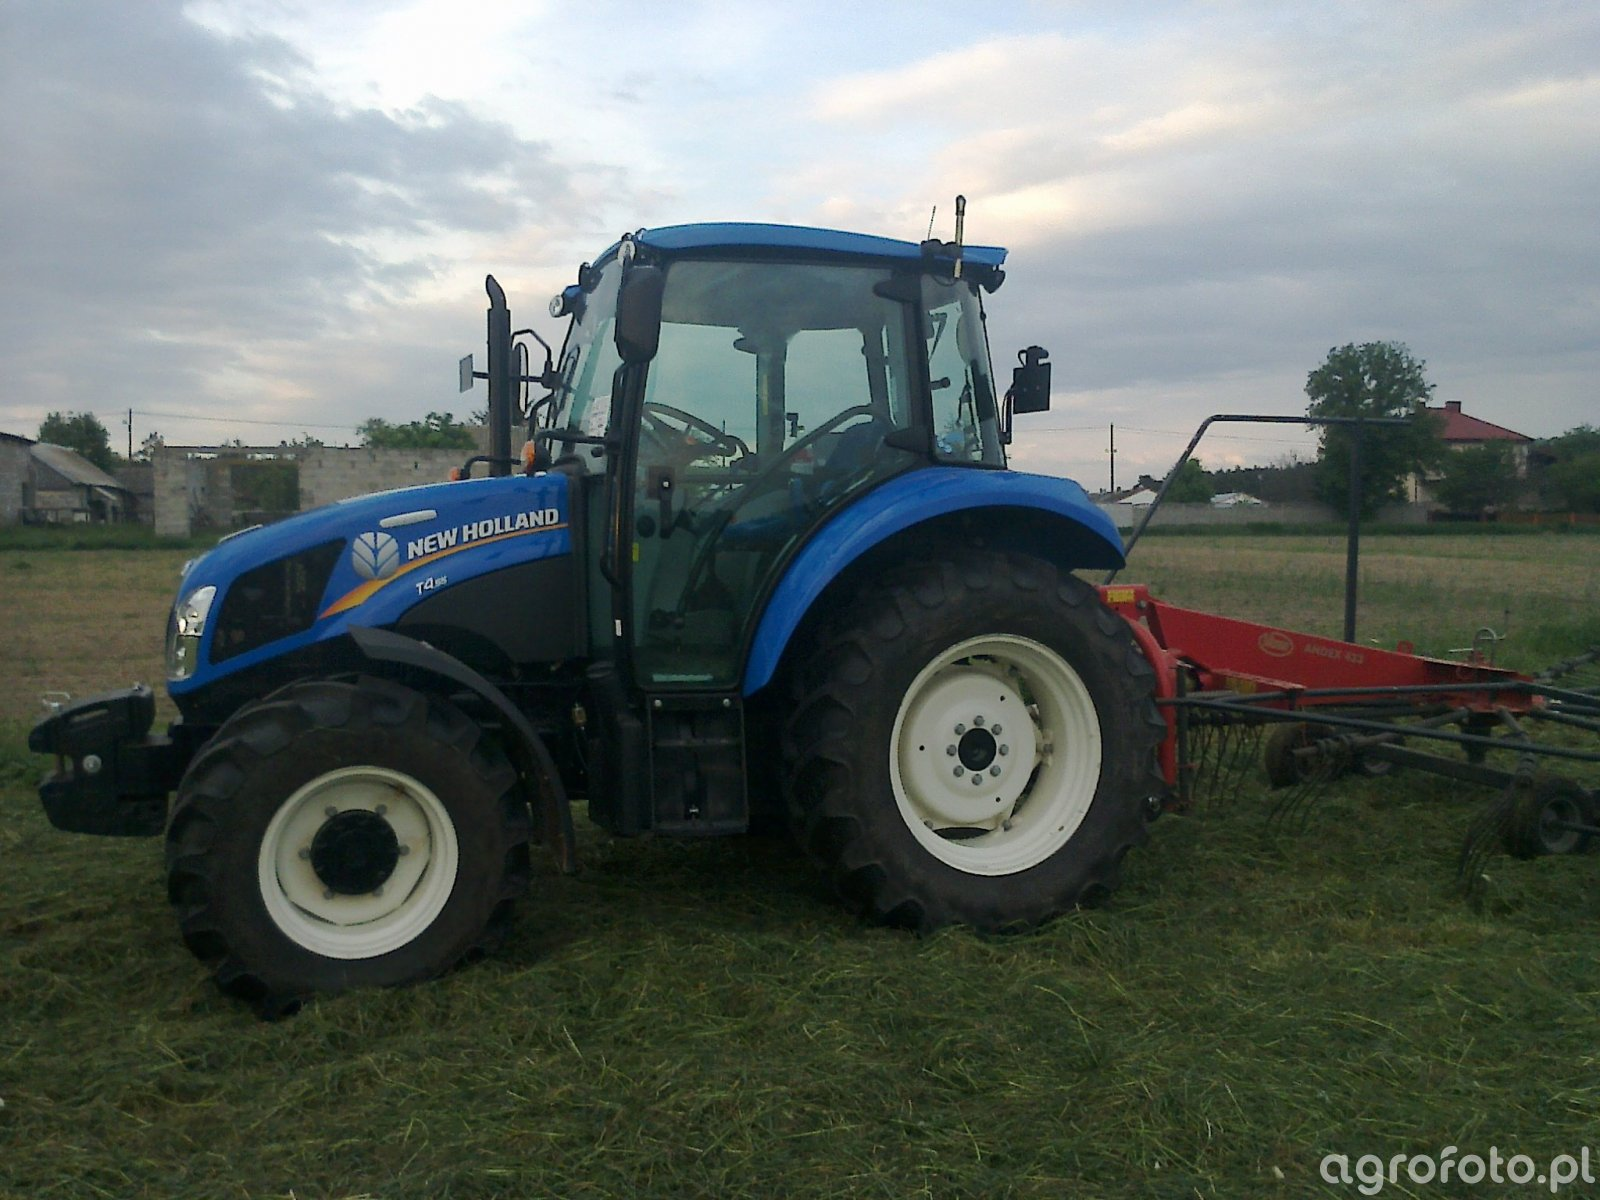 New Holland T4.55 + Vicon Andex 433